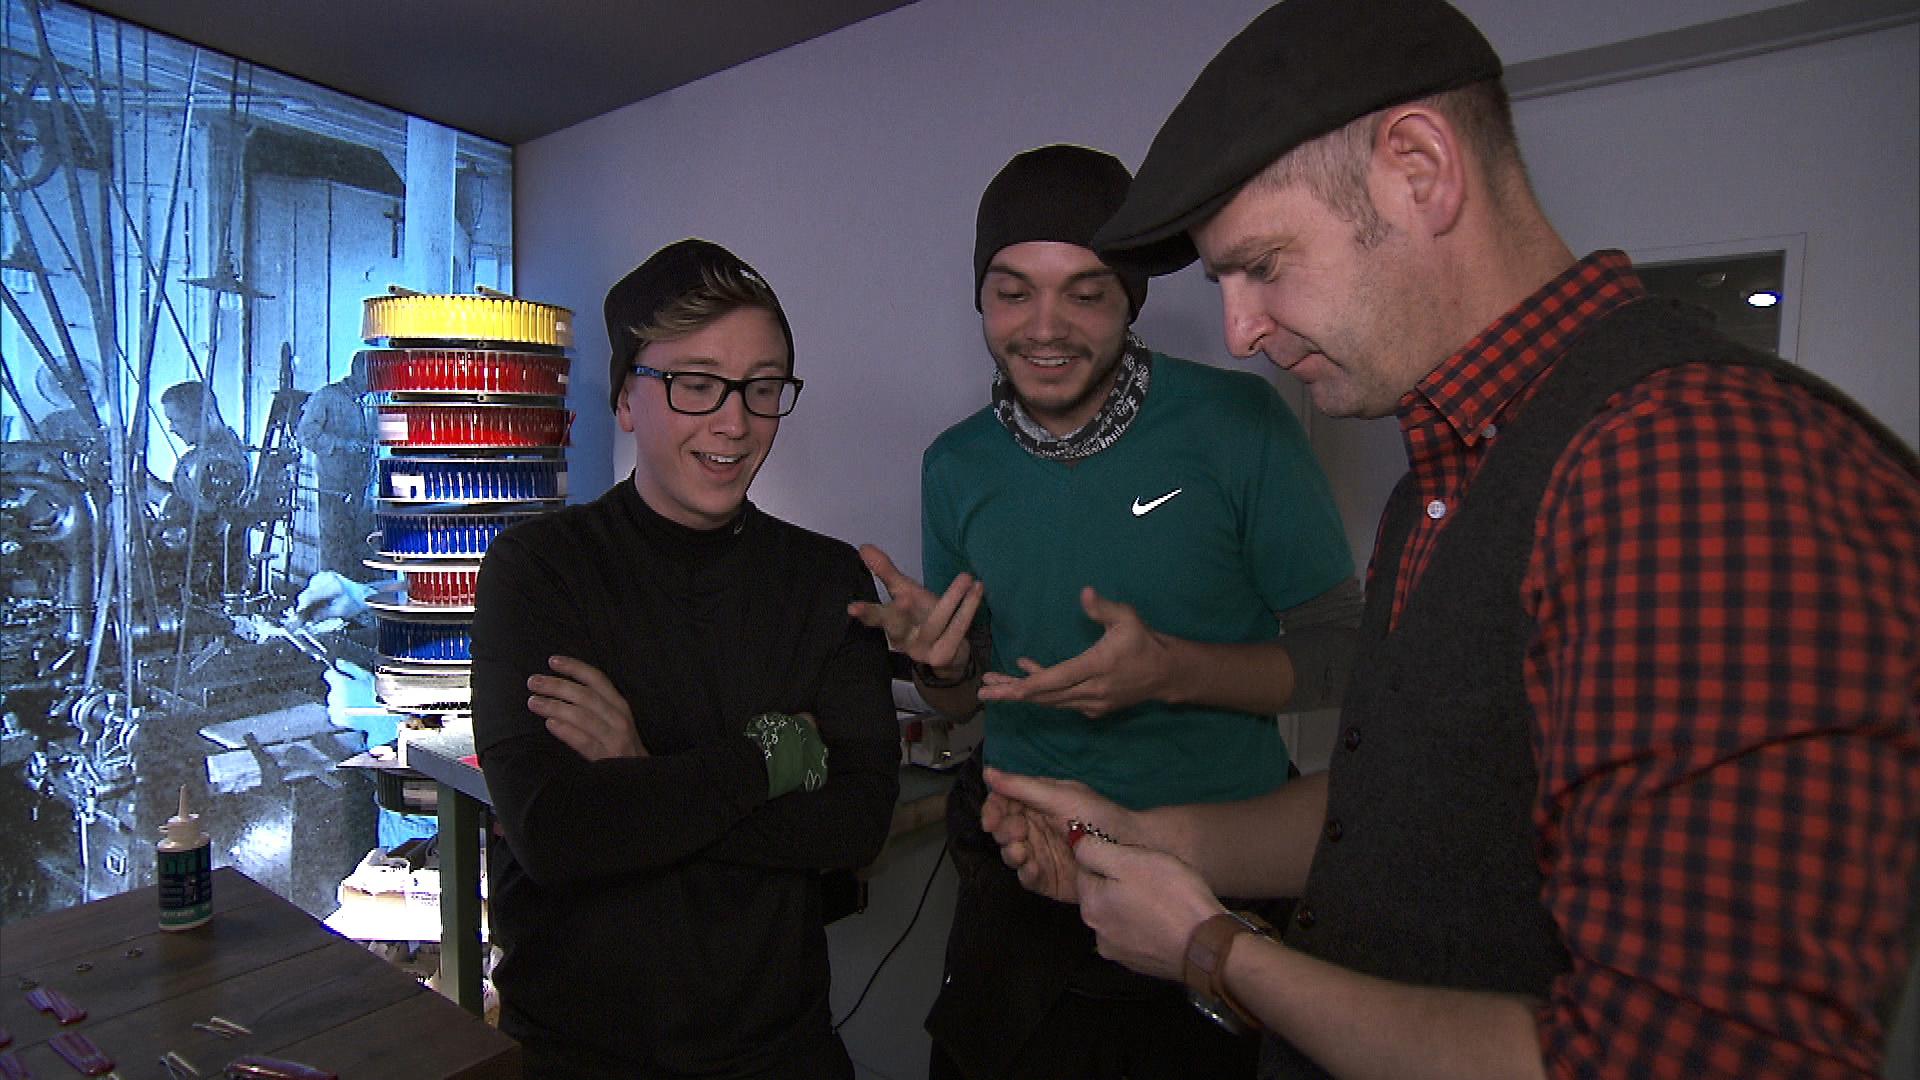 In Detour A, Tyler and Korey wait to see if they properly assembled the famous pocket knife.